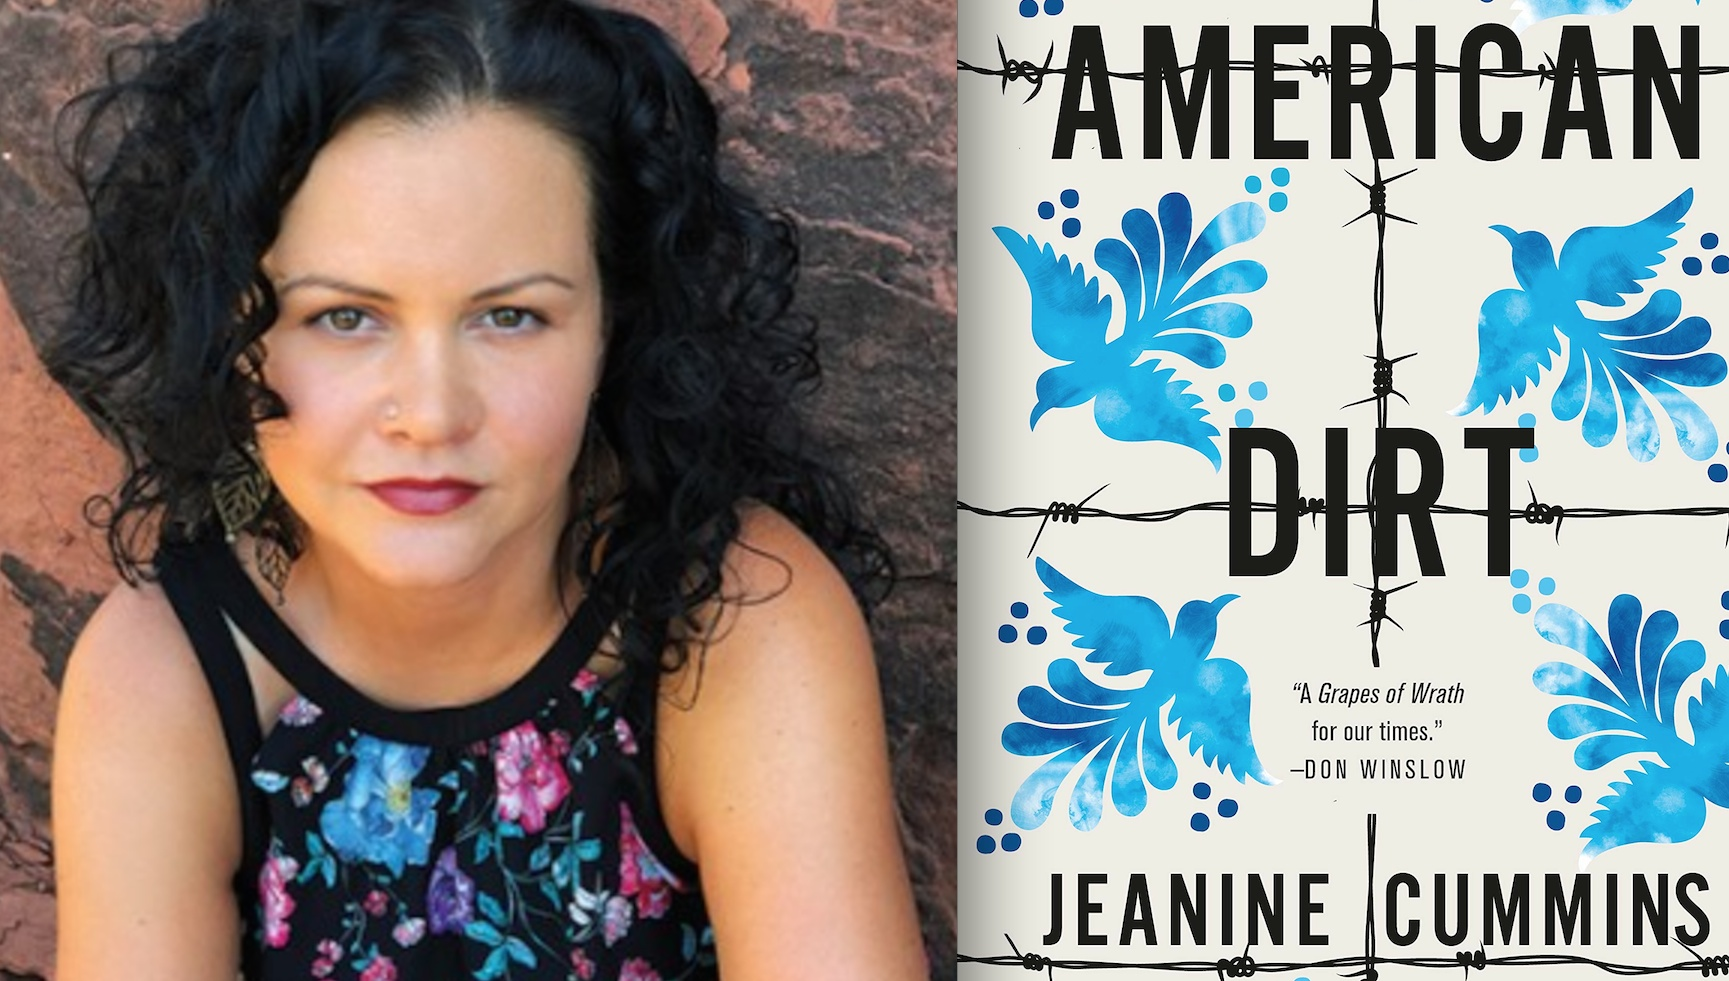 Thoughts on American Dirt by Jeanine Cummins